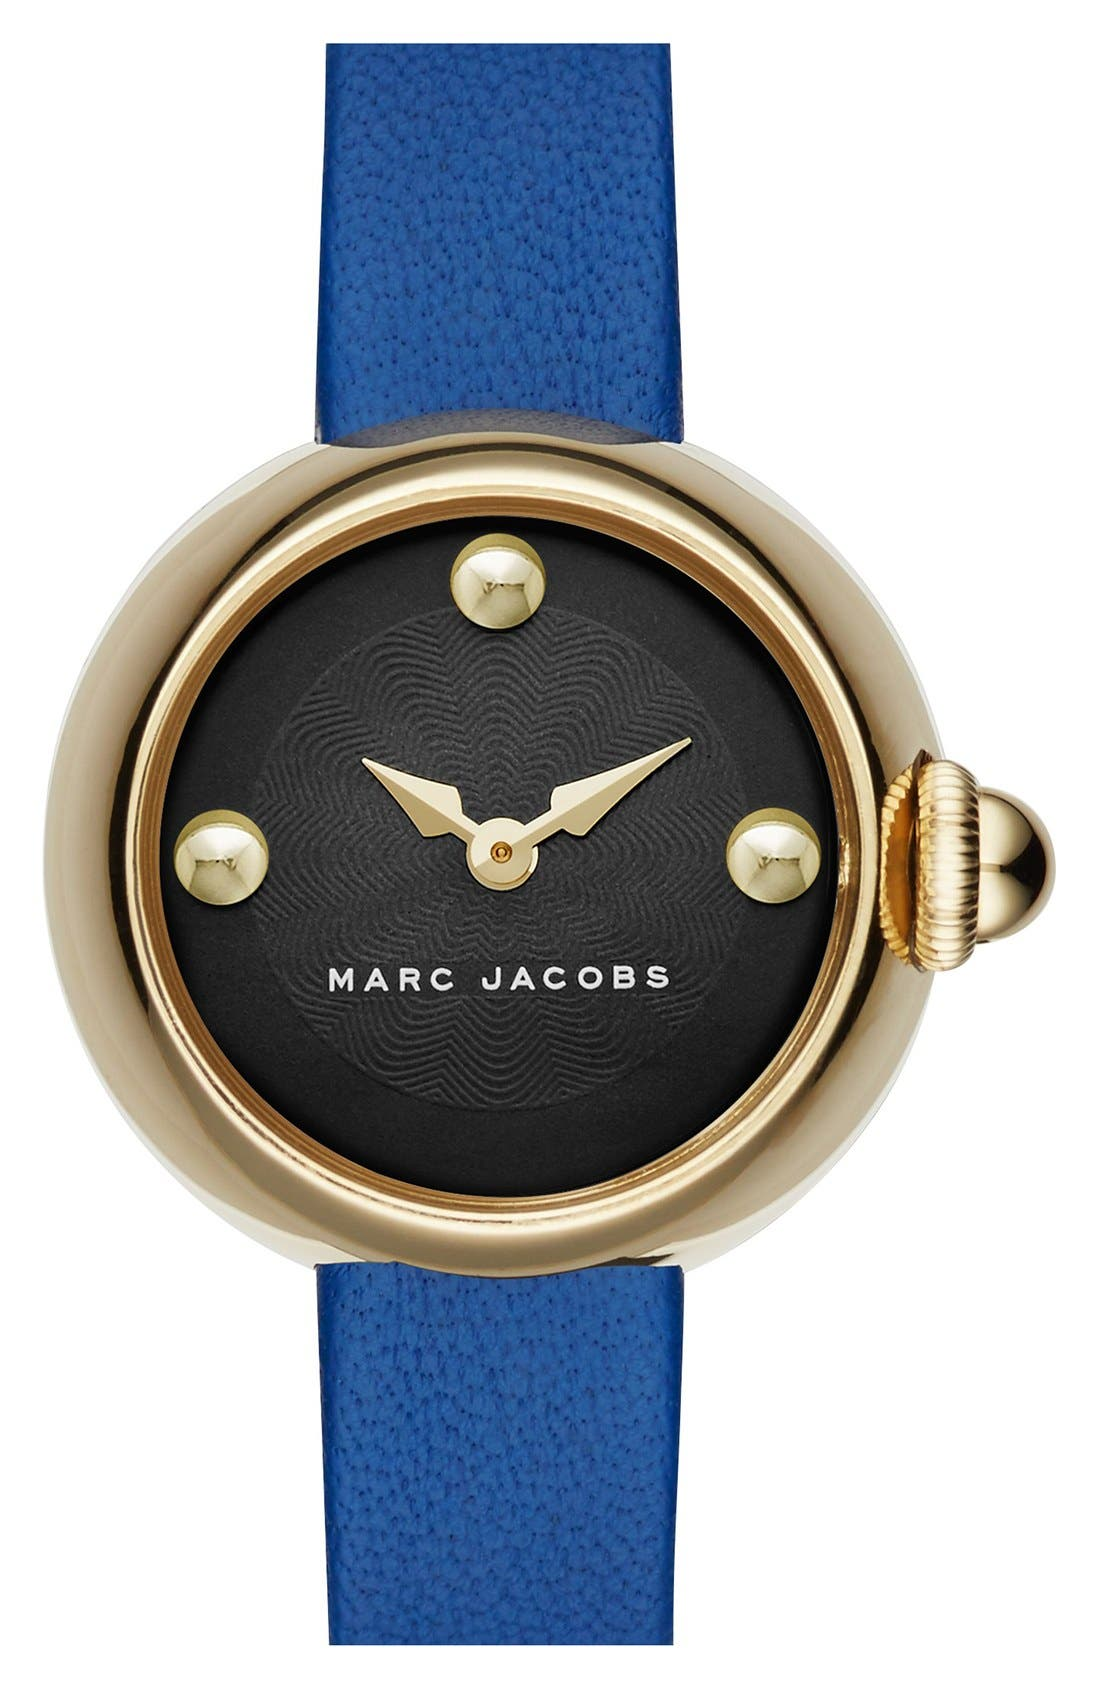 Main Image - MARC JACOBS 'Courtney' Leather Strap Watch, 28mm